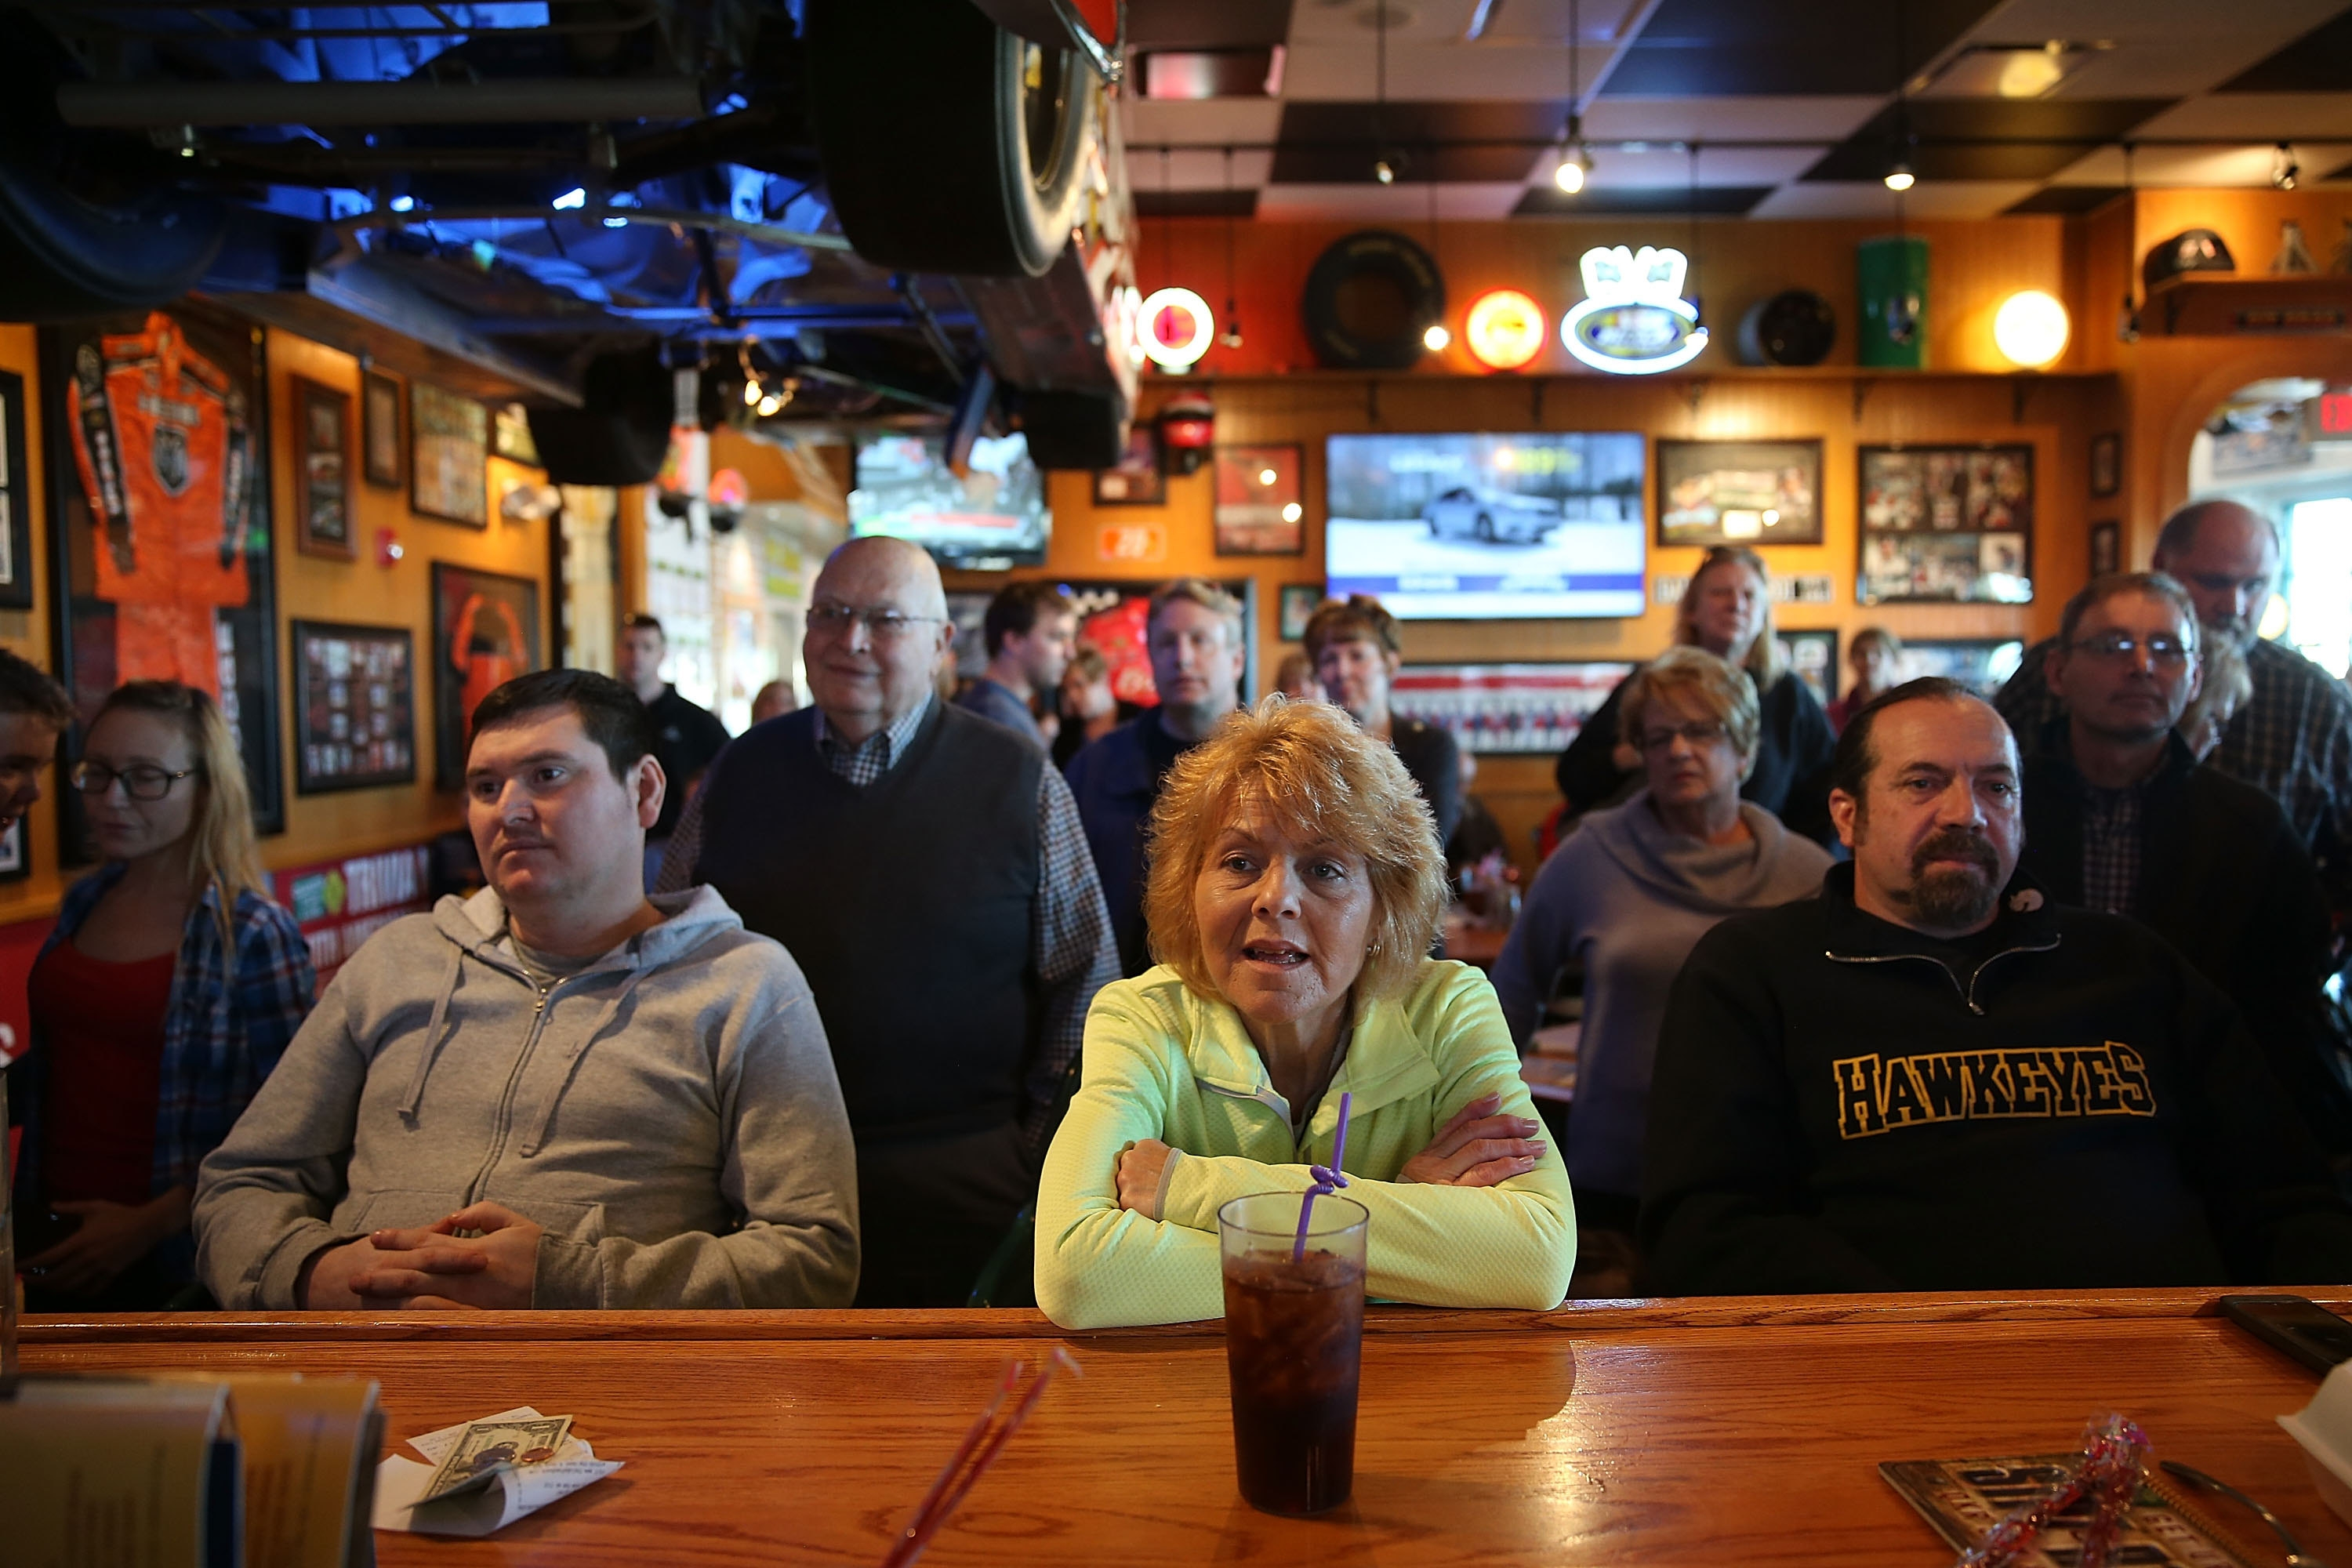 Patrons at a Quaker Steak & Lube restaurant listen to remarks by Republican presidential candidate Chris Christie, the governor of New Jersey, during a campaign event in Council Bluffs, Iowa. The Iowa caucuses will be held Monday night.